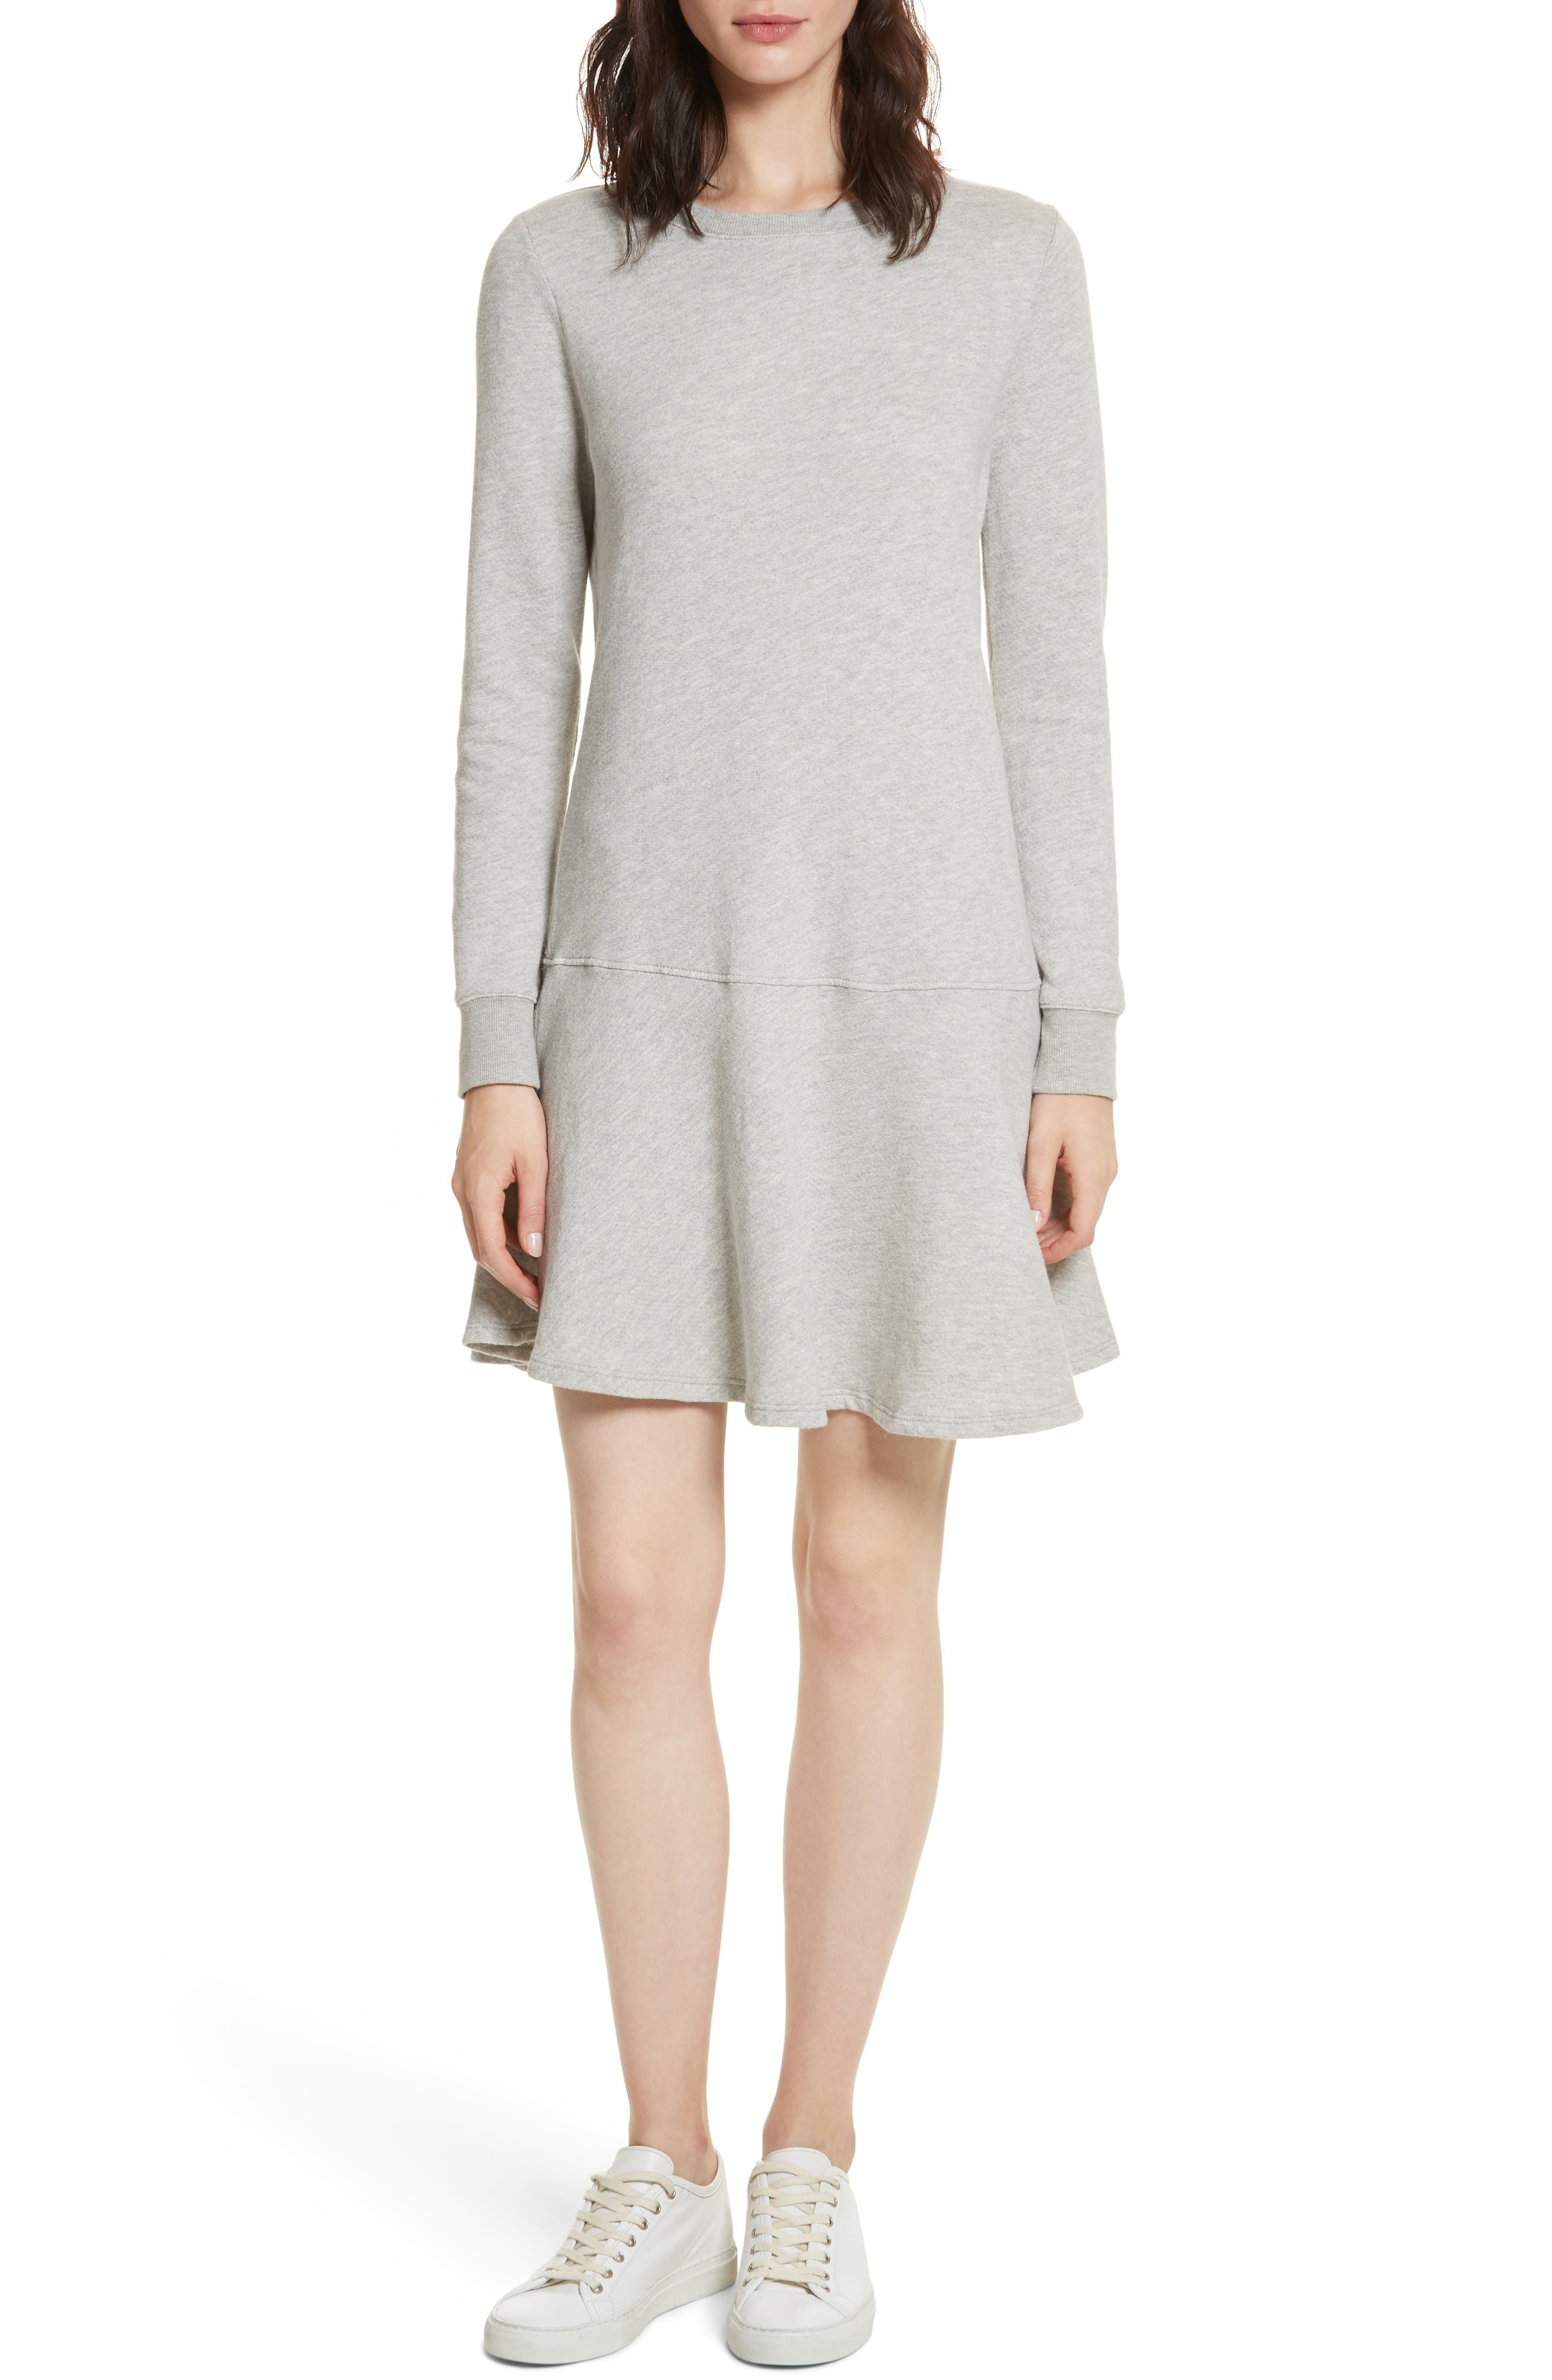 Runna French Terry A-Line Dress,                             Alternate thumbnail 5, color,                             033